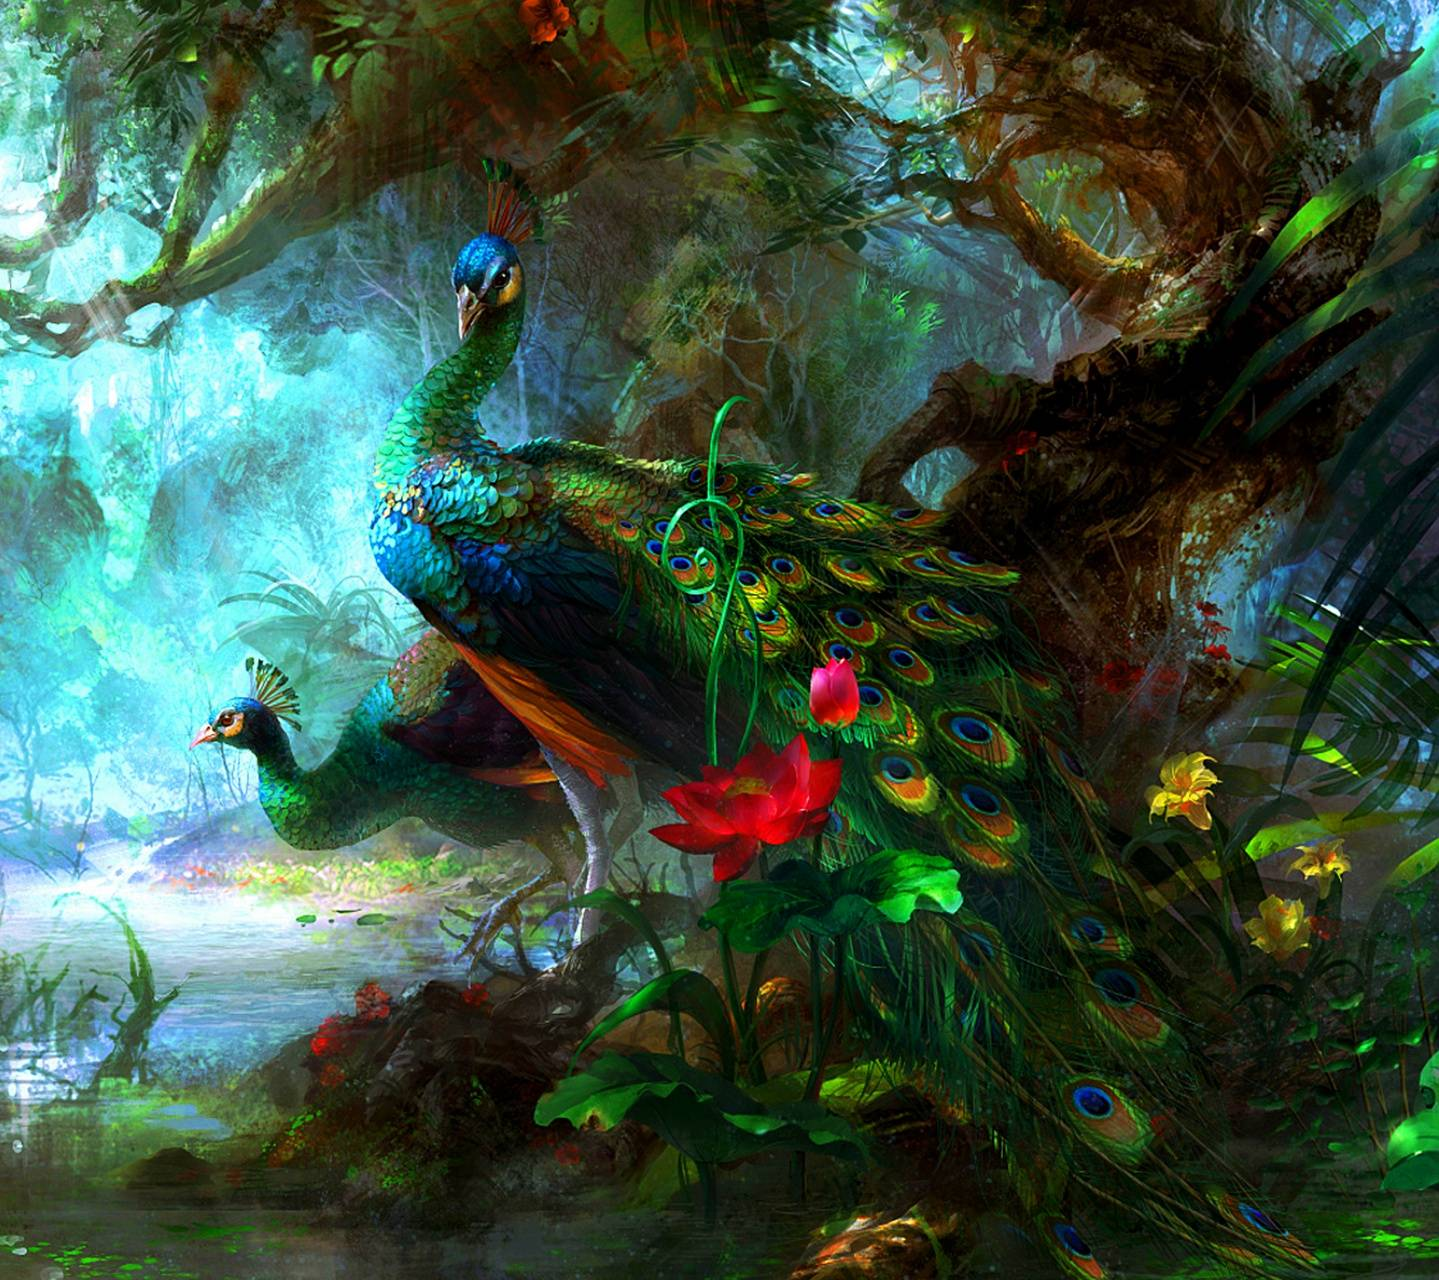 Peacock Hd Wallpaper By Mr_LazY_